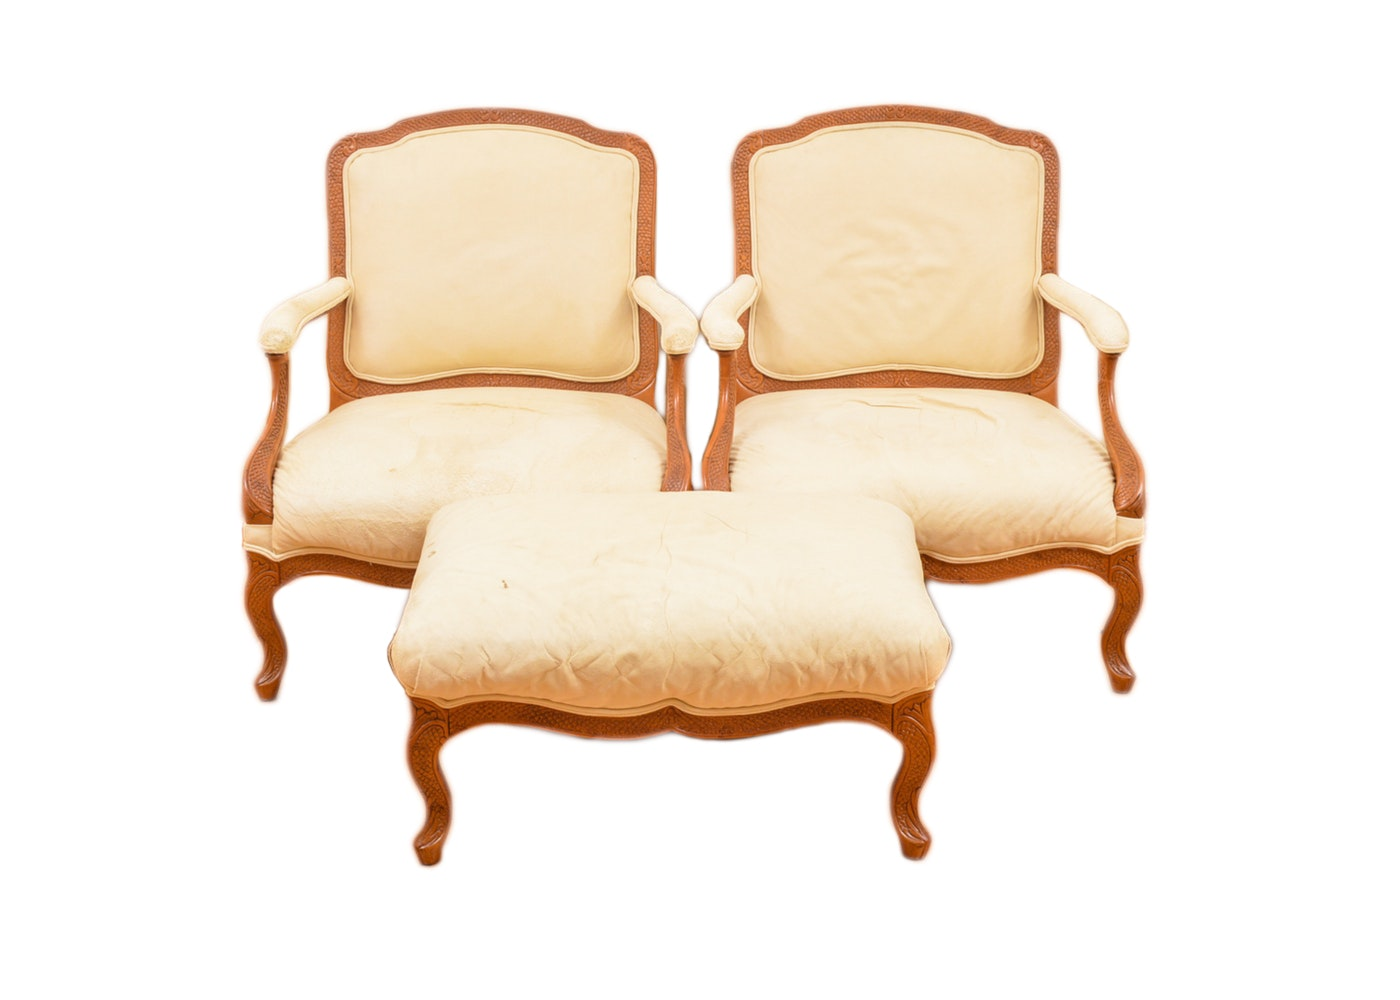 Pair of Vintage Louis XV Style Armchairs with Ottoman